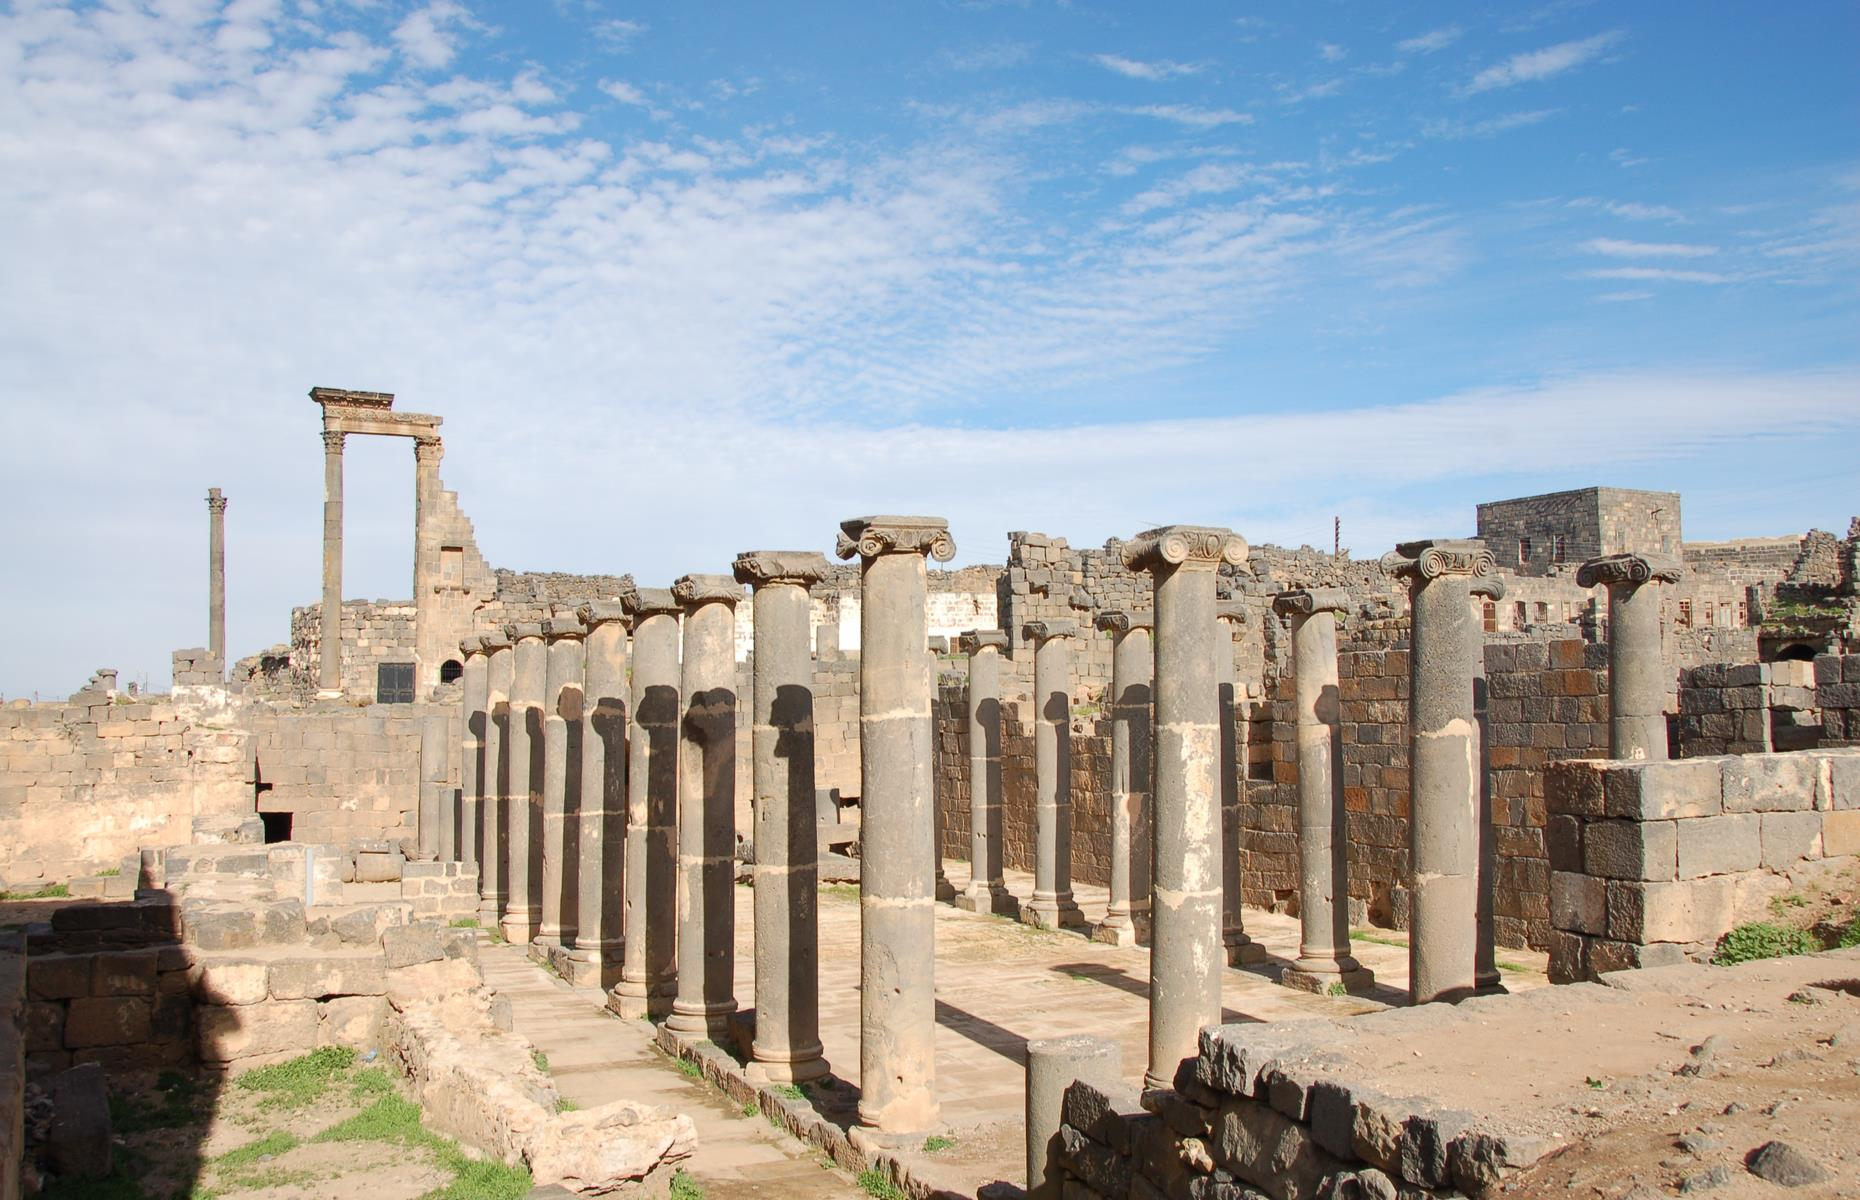 Slide 41 of 53: This ancient city was once the capital of the Roman province of Arabia and a stopover for pilgrims on the ancient caravan route to Mecca. The site included a magnificent 2nd-century Roman theater, early Christian ruins and several mosques. As a result of the ongoing civil war, fighting has caused irreparable damage to much of this precious historical site.